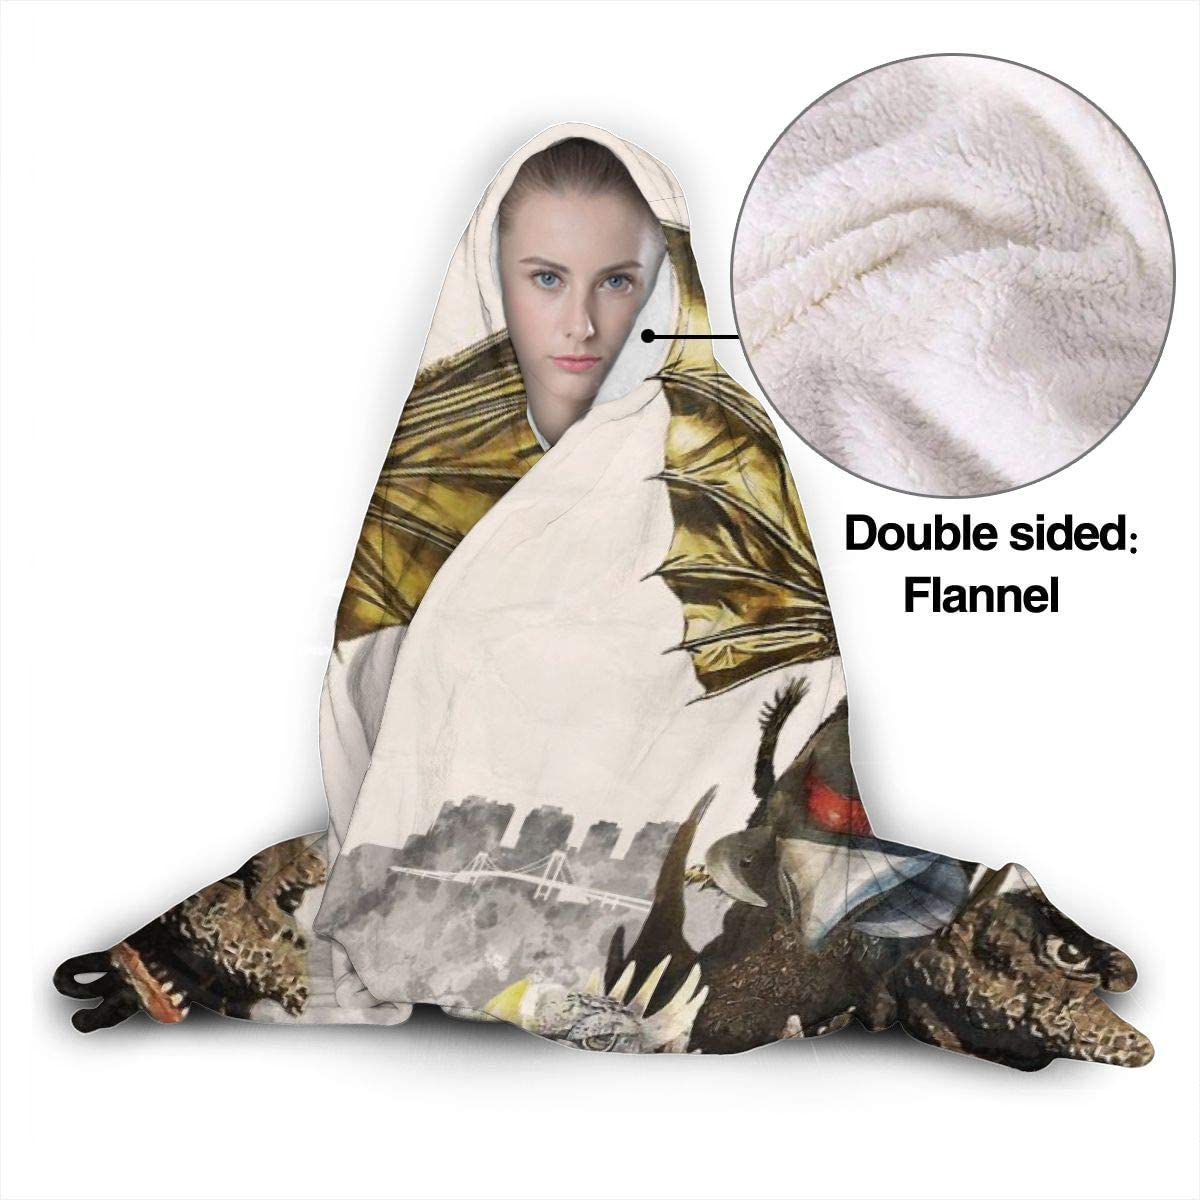 ONEFashion Lightweight Luxury Winter Warm Flannel Fleece Blanket Hooded for Livingroom Bedroom,King Adora Vs Godzilla Wearable Hooded Blanket Hood Poncho Cloak Cape,Queen Size